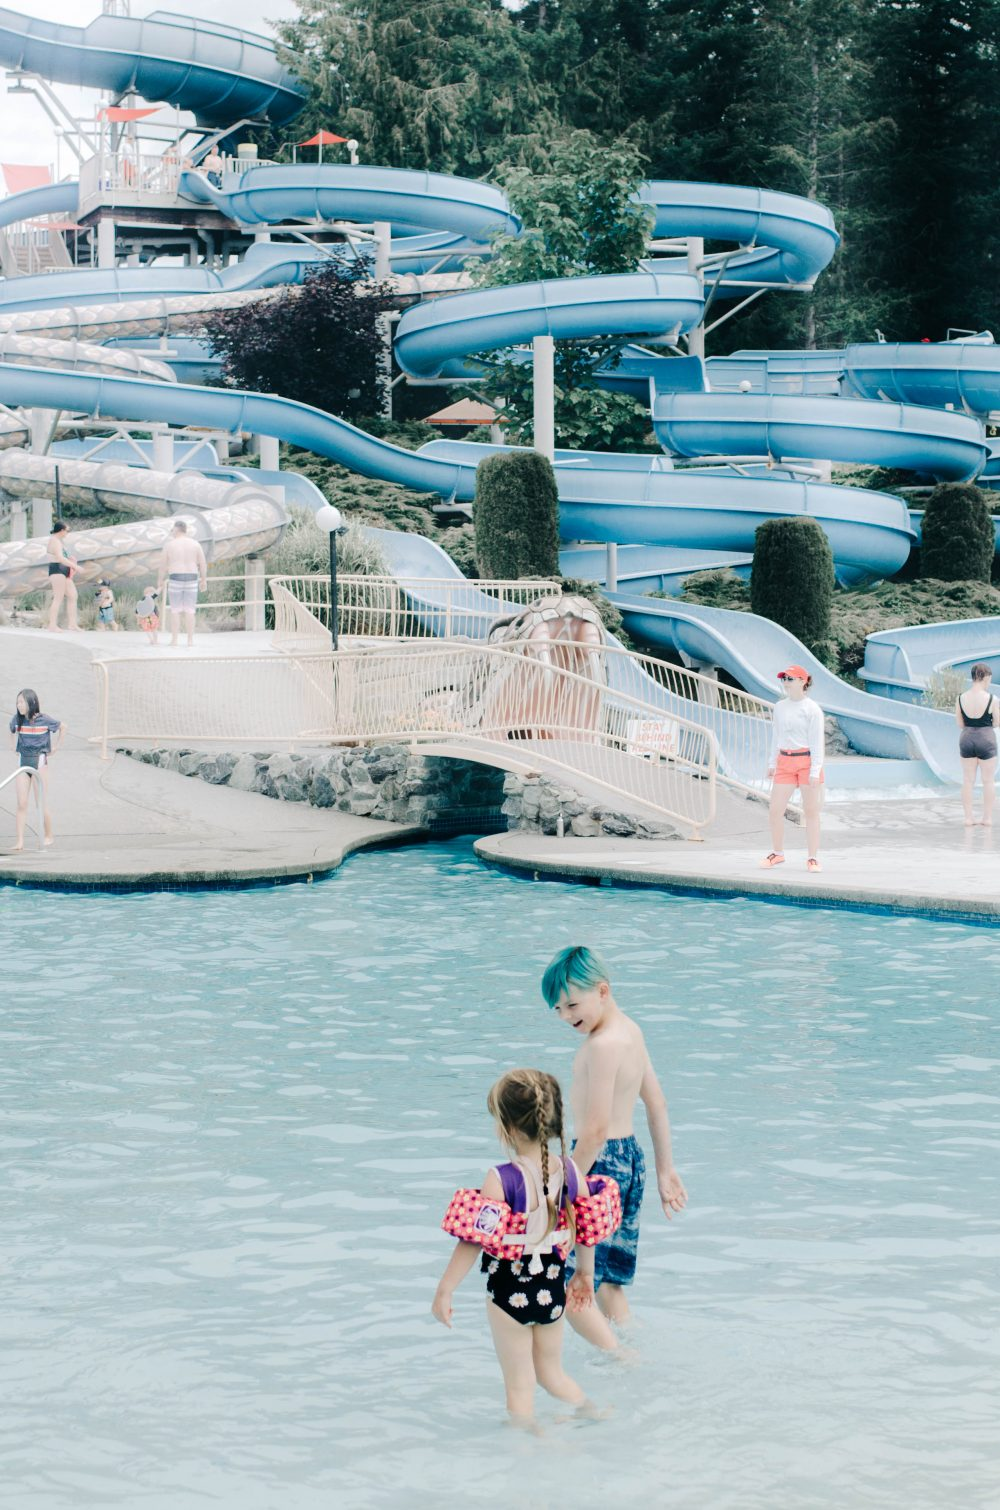 Cultus Lake Waterslides | Things to do Near Cultus Lake in Chilliwack